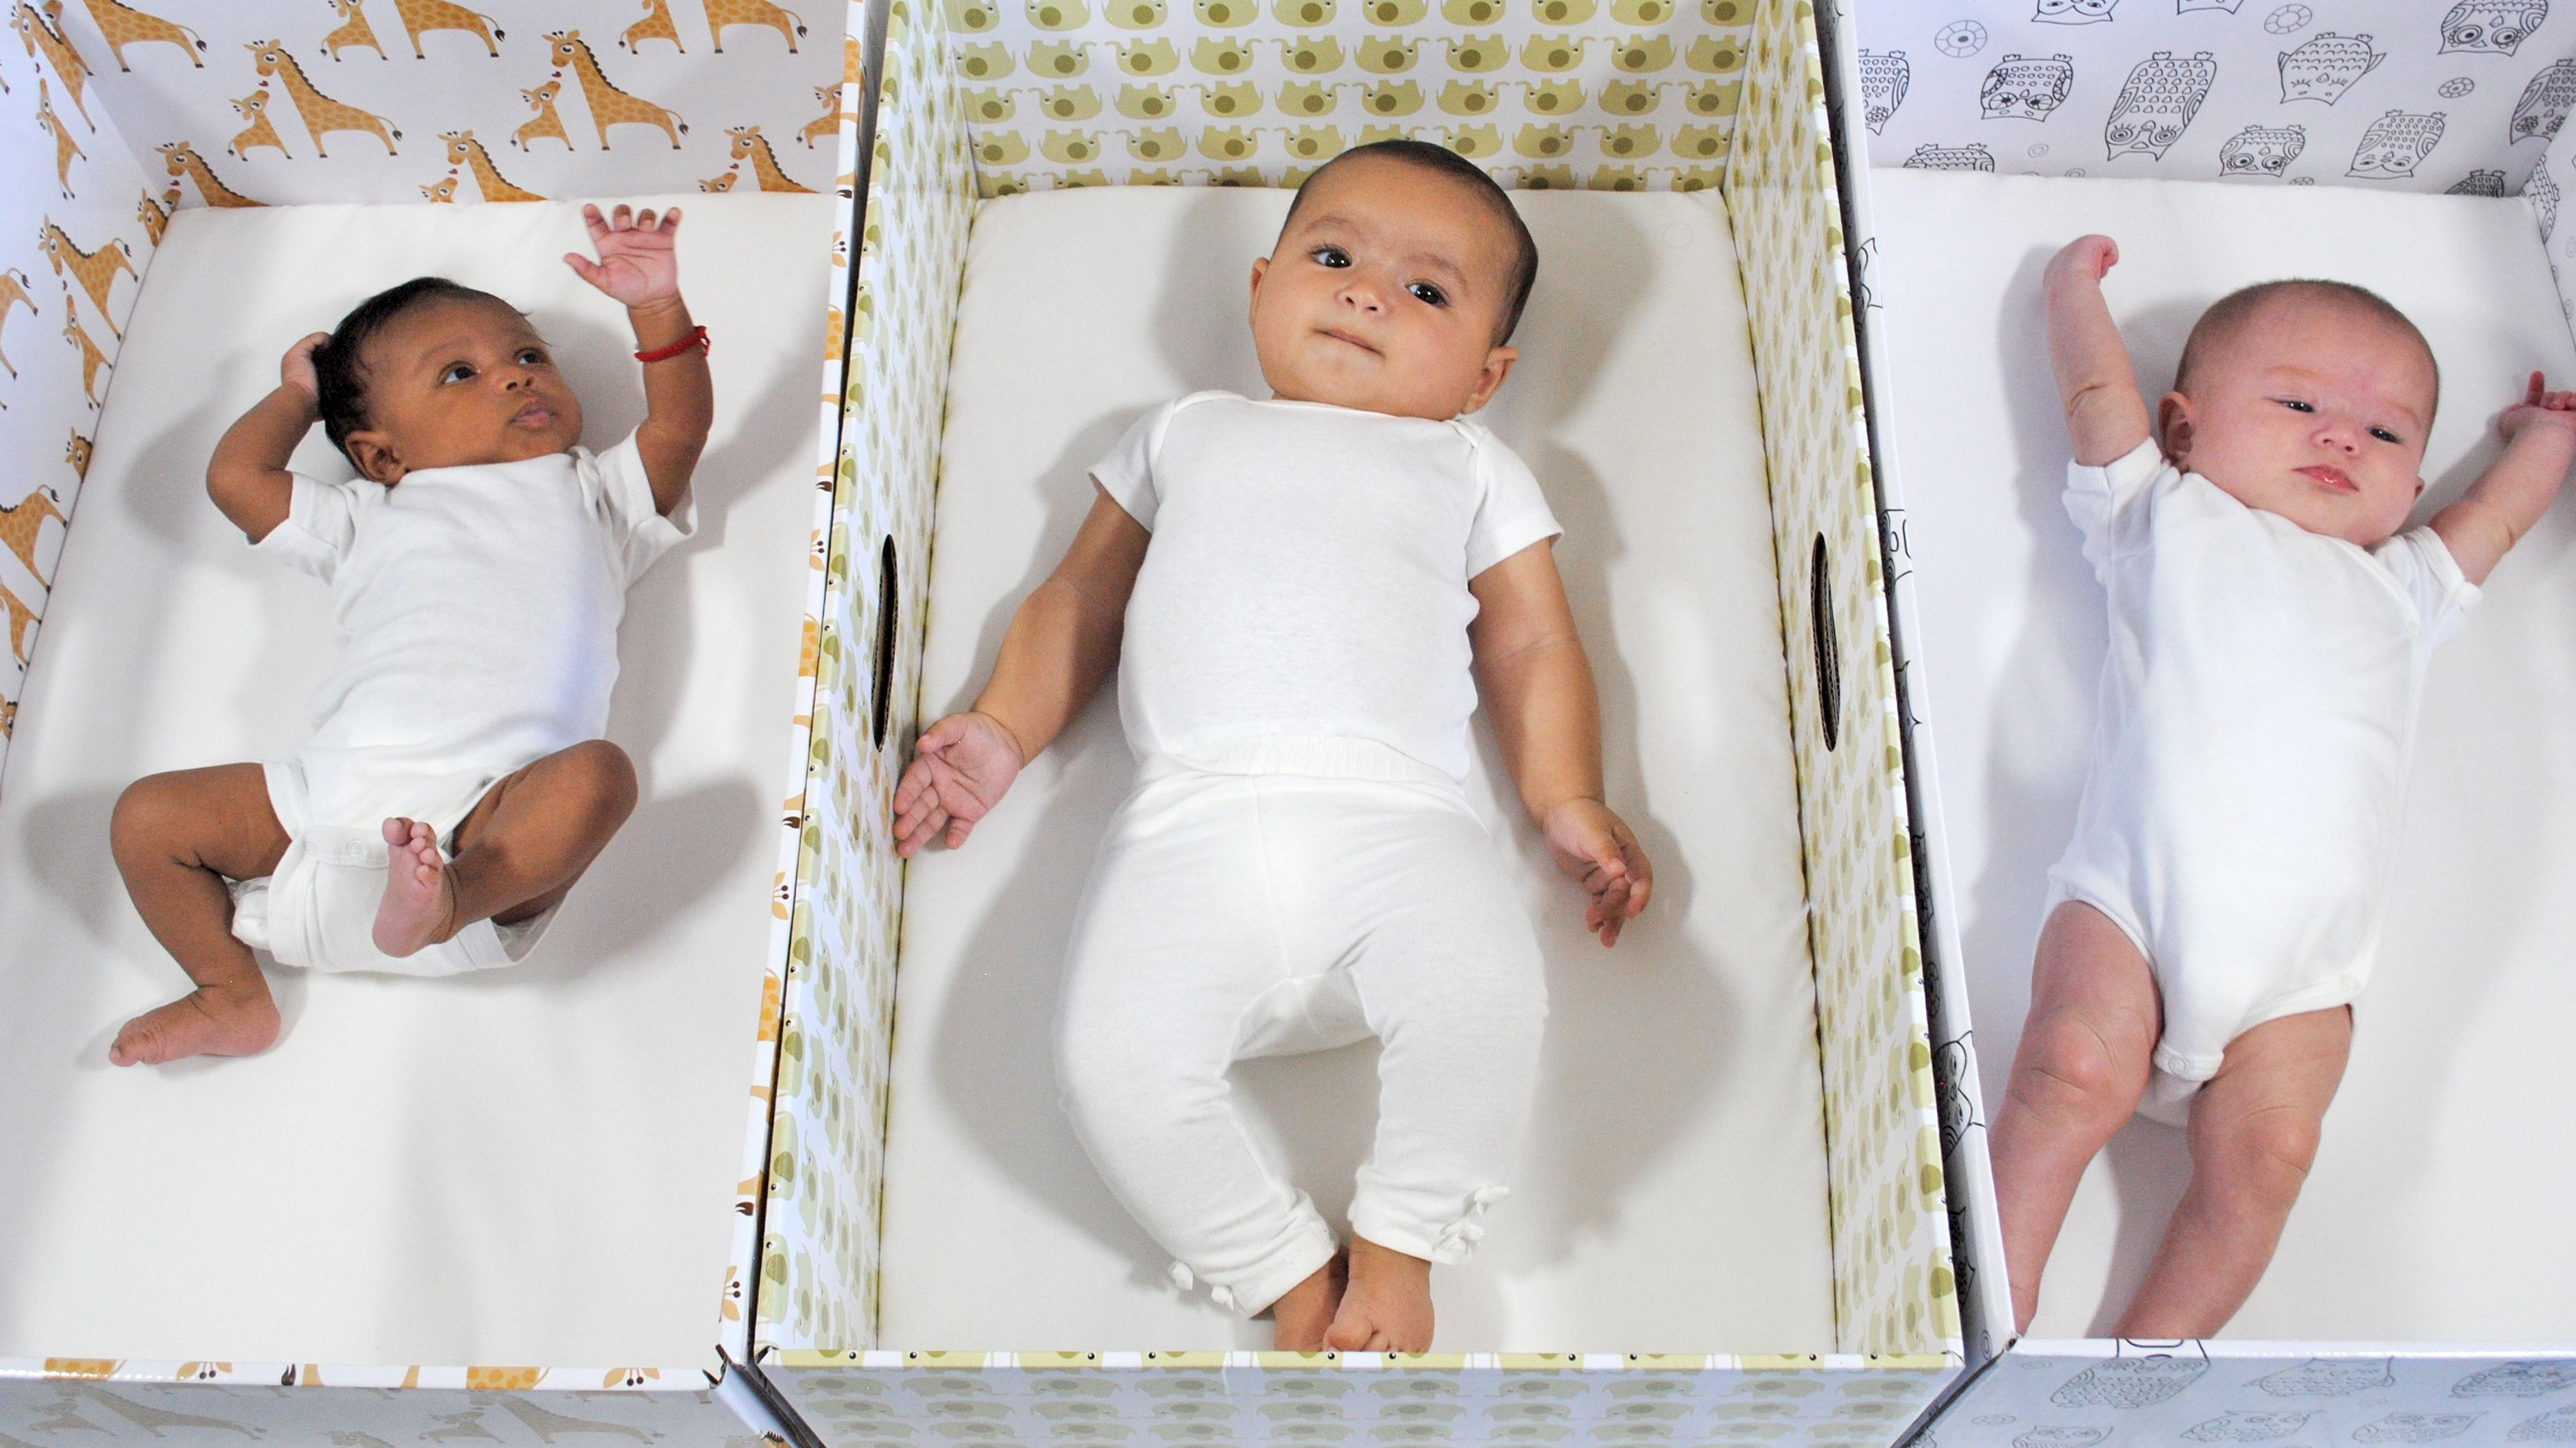 Pin By The Baby Box Co On Baby Box Co Boxes Baby Box Infant Mortality Cardboard Baby